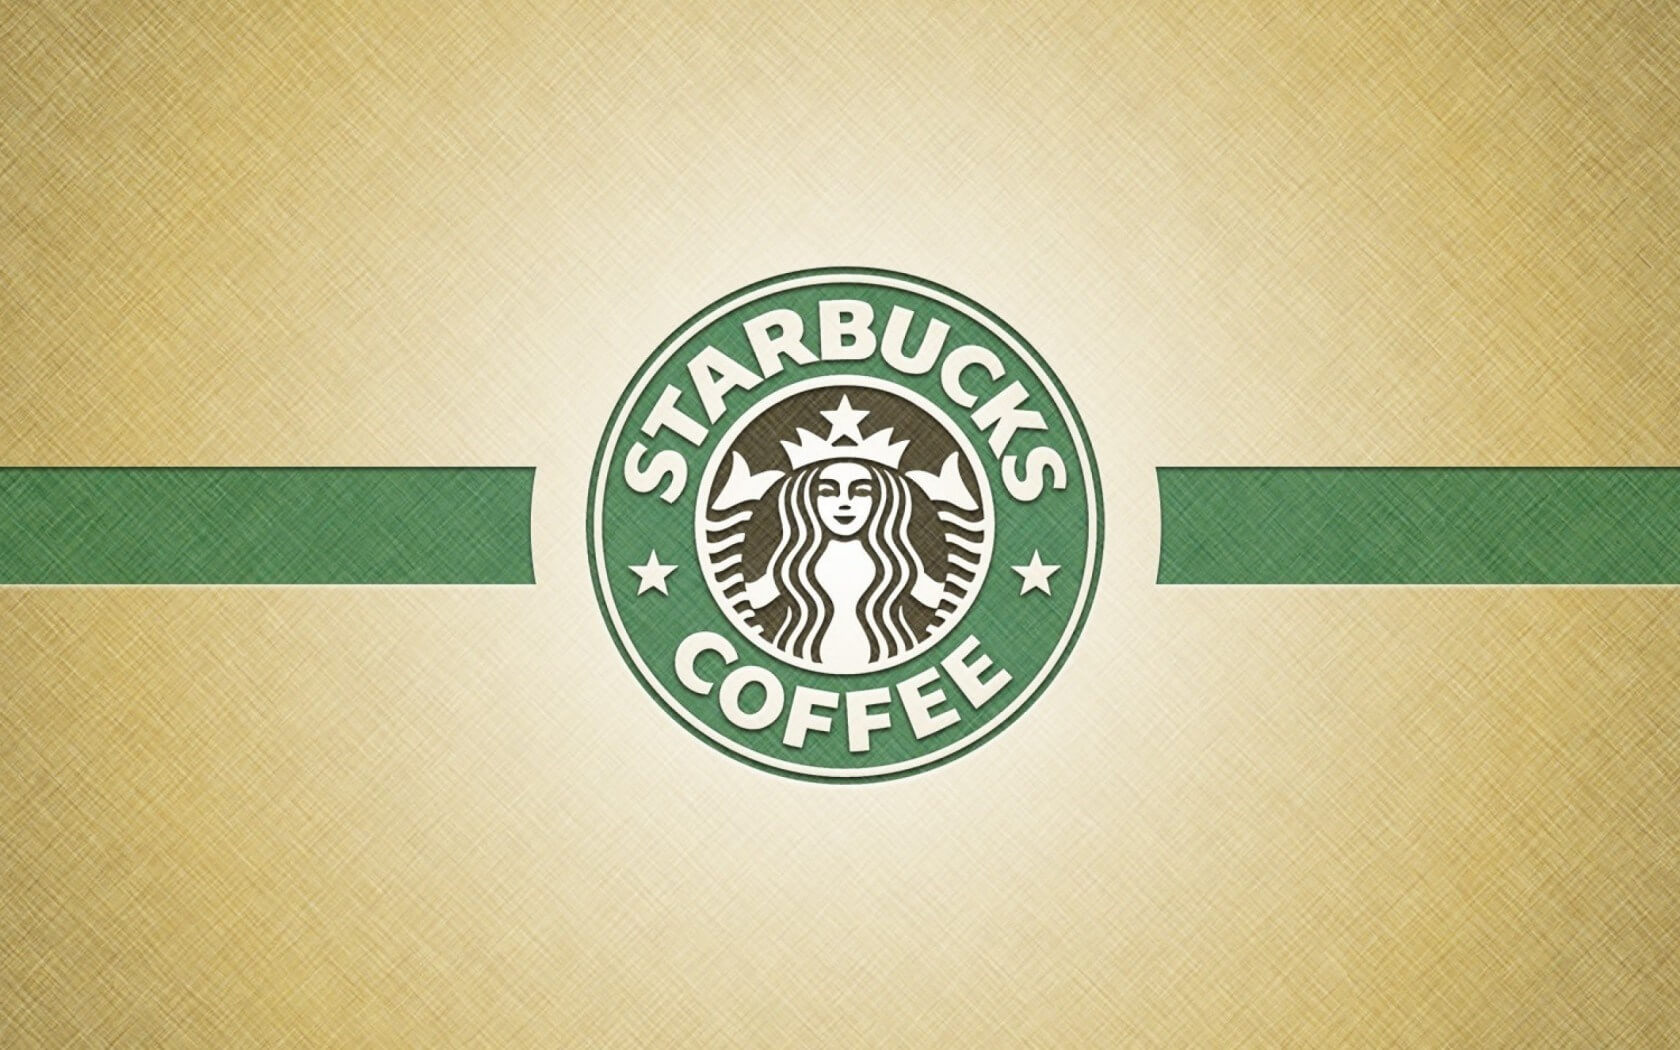 Starbucks Ppt Background - Powerpoint Backgrounds For Free Pertaining To Starbucks Powerpoint Template